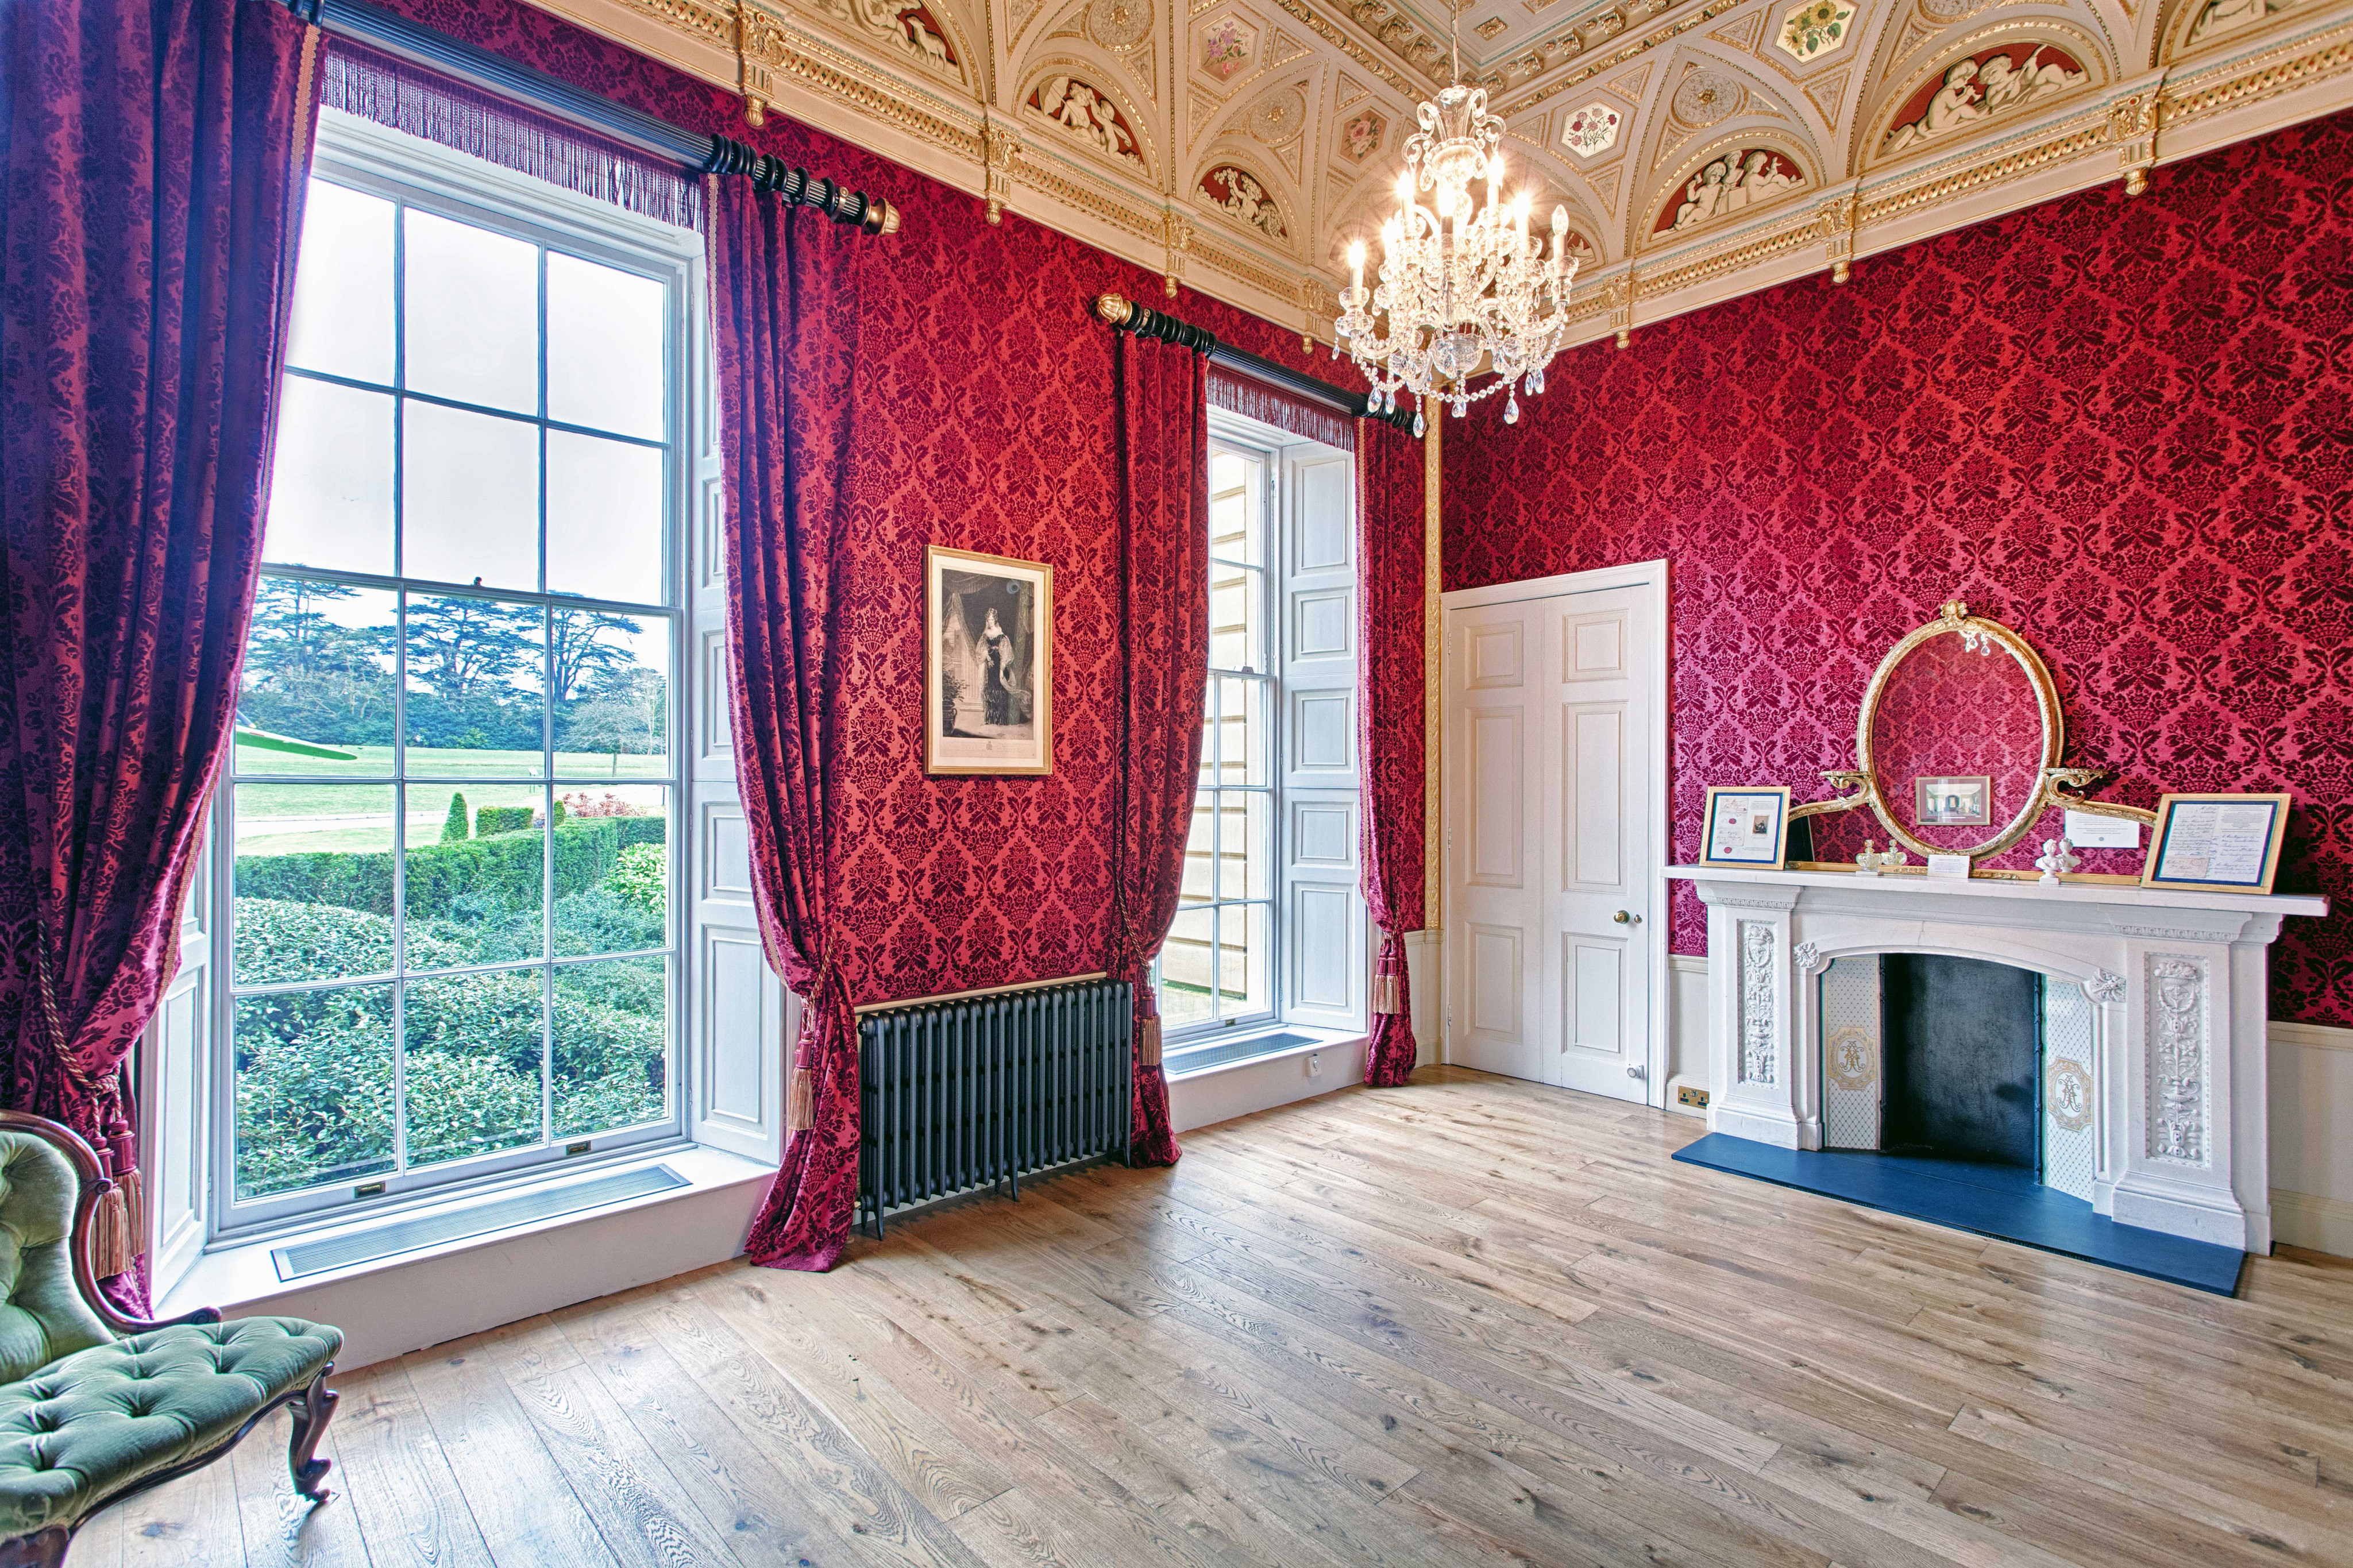 Image of Adelaide Room at Bentley Priory